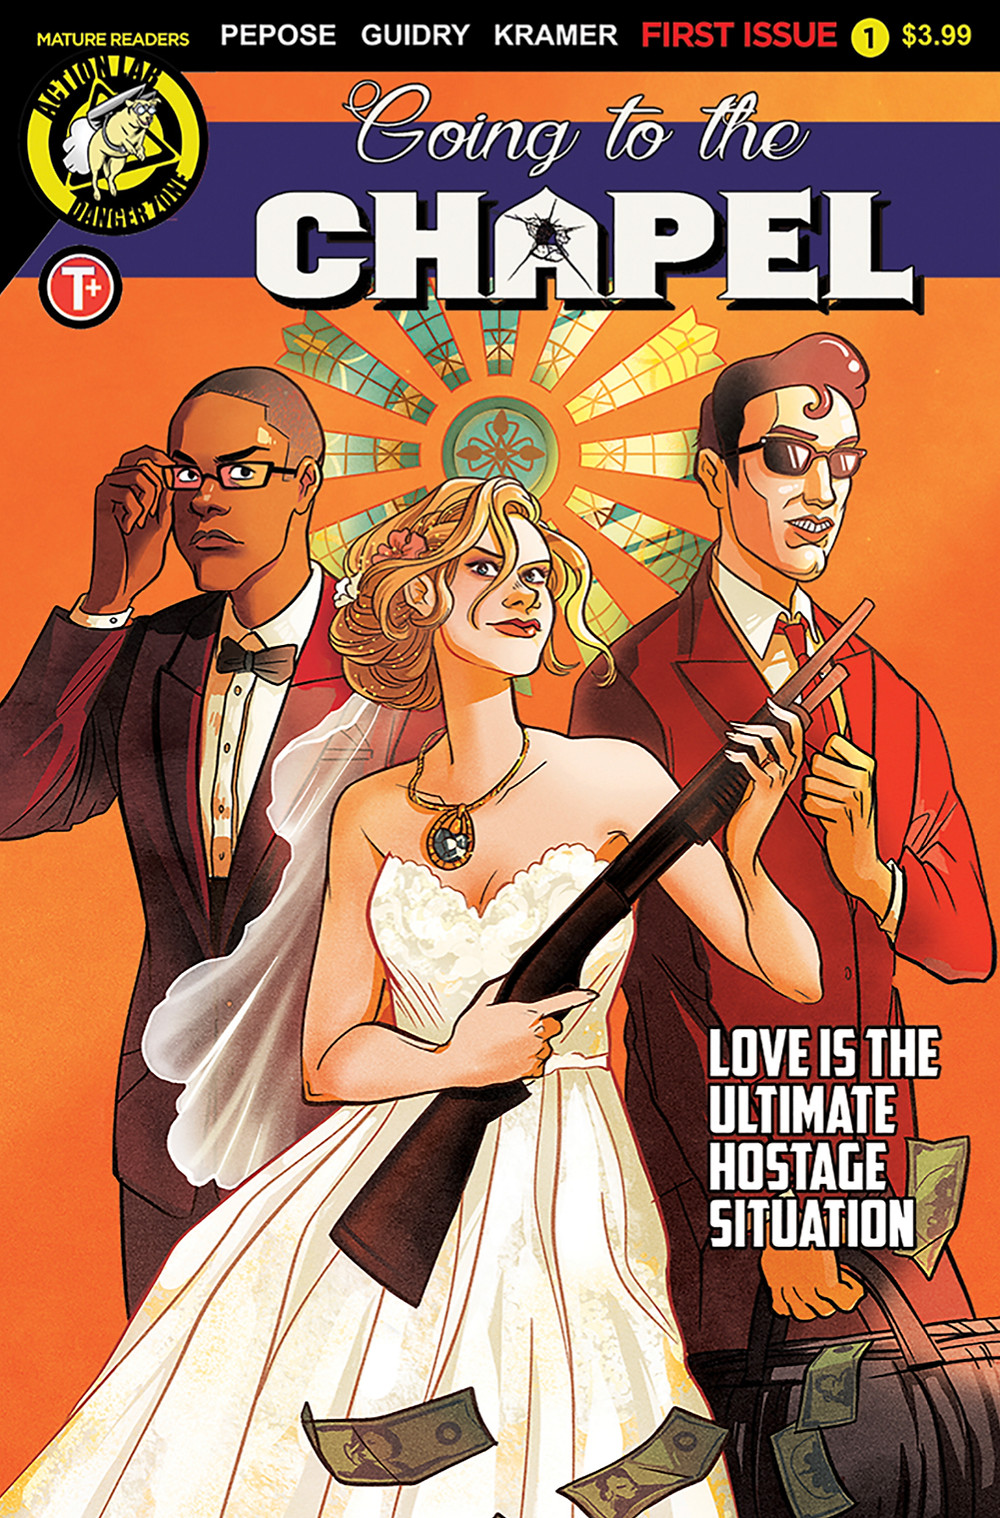 Going to the Chapel #1, cover, Action Lab Entertainment, Pepose/Guidry